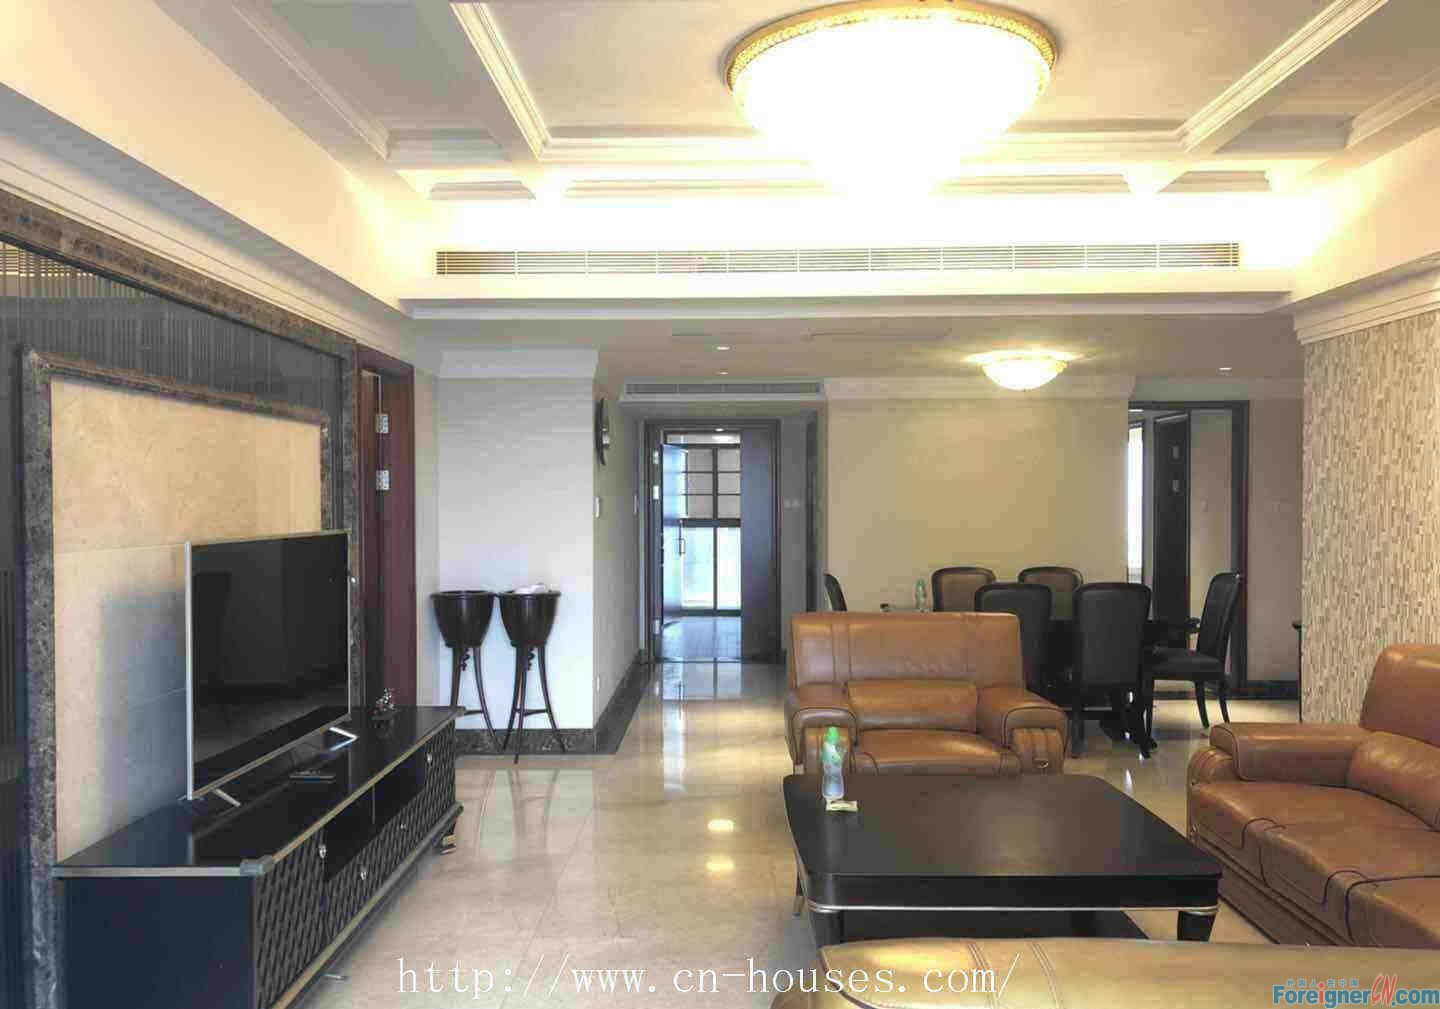 JiaYu Mansion Apartment-3Br, 200Ssqm, High-spacious living room, comfortable&the sunshine is abundant.